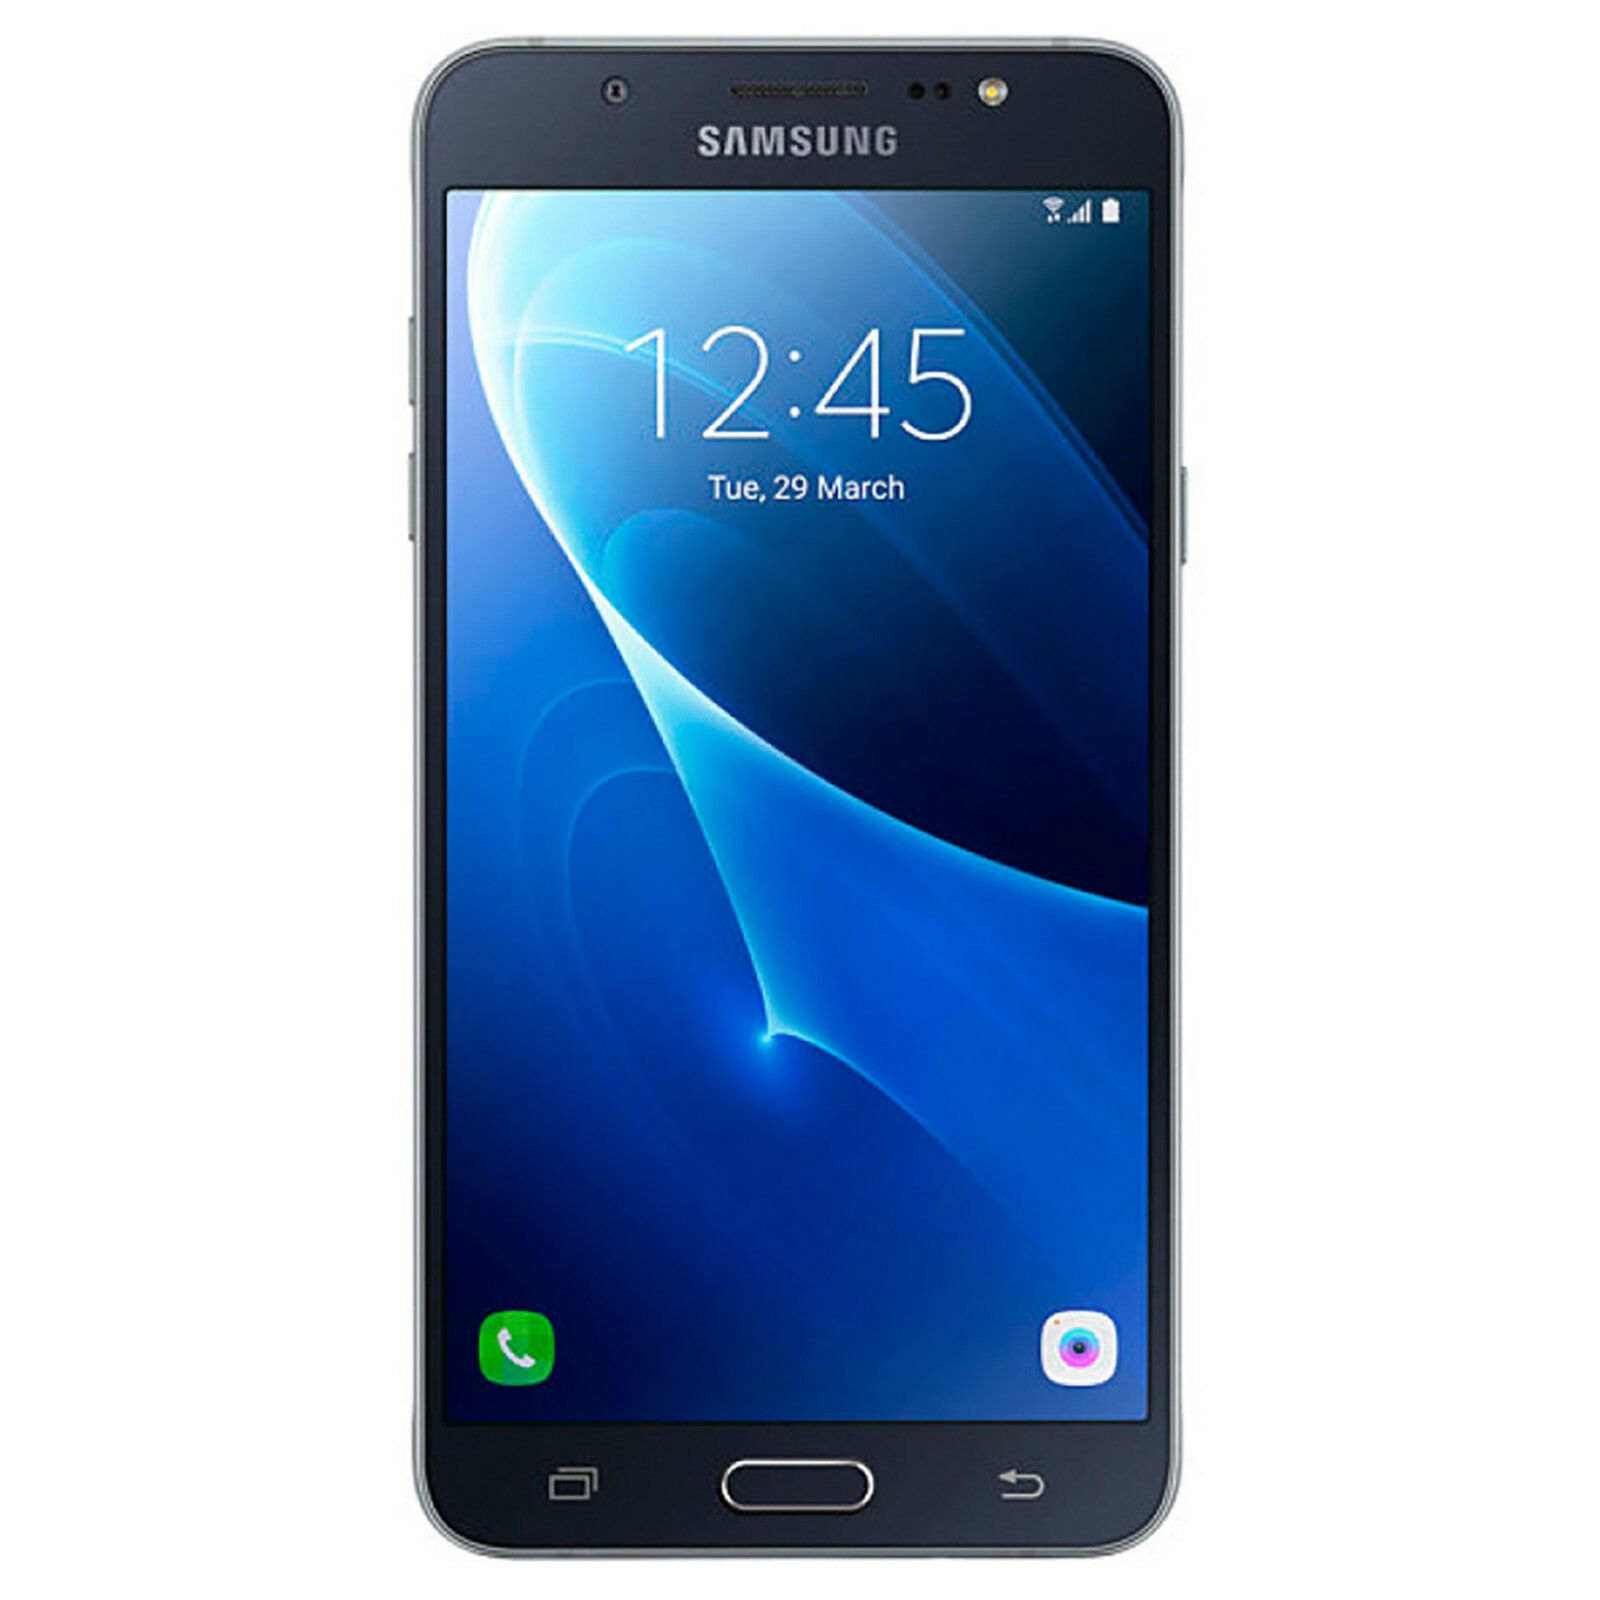 samsung galaxy j7 unlocked gsm 4g lte octa core 13mp dual. Black Bedroom Furniture Sets. Home Design Ideas